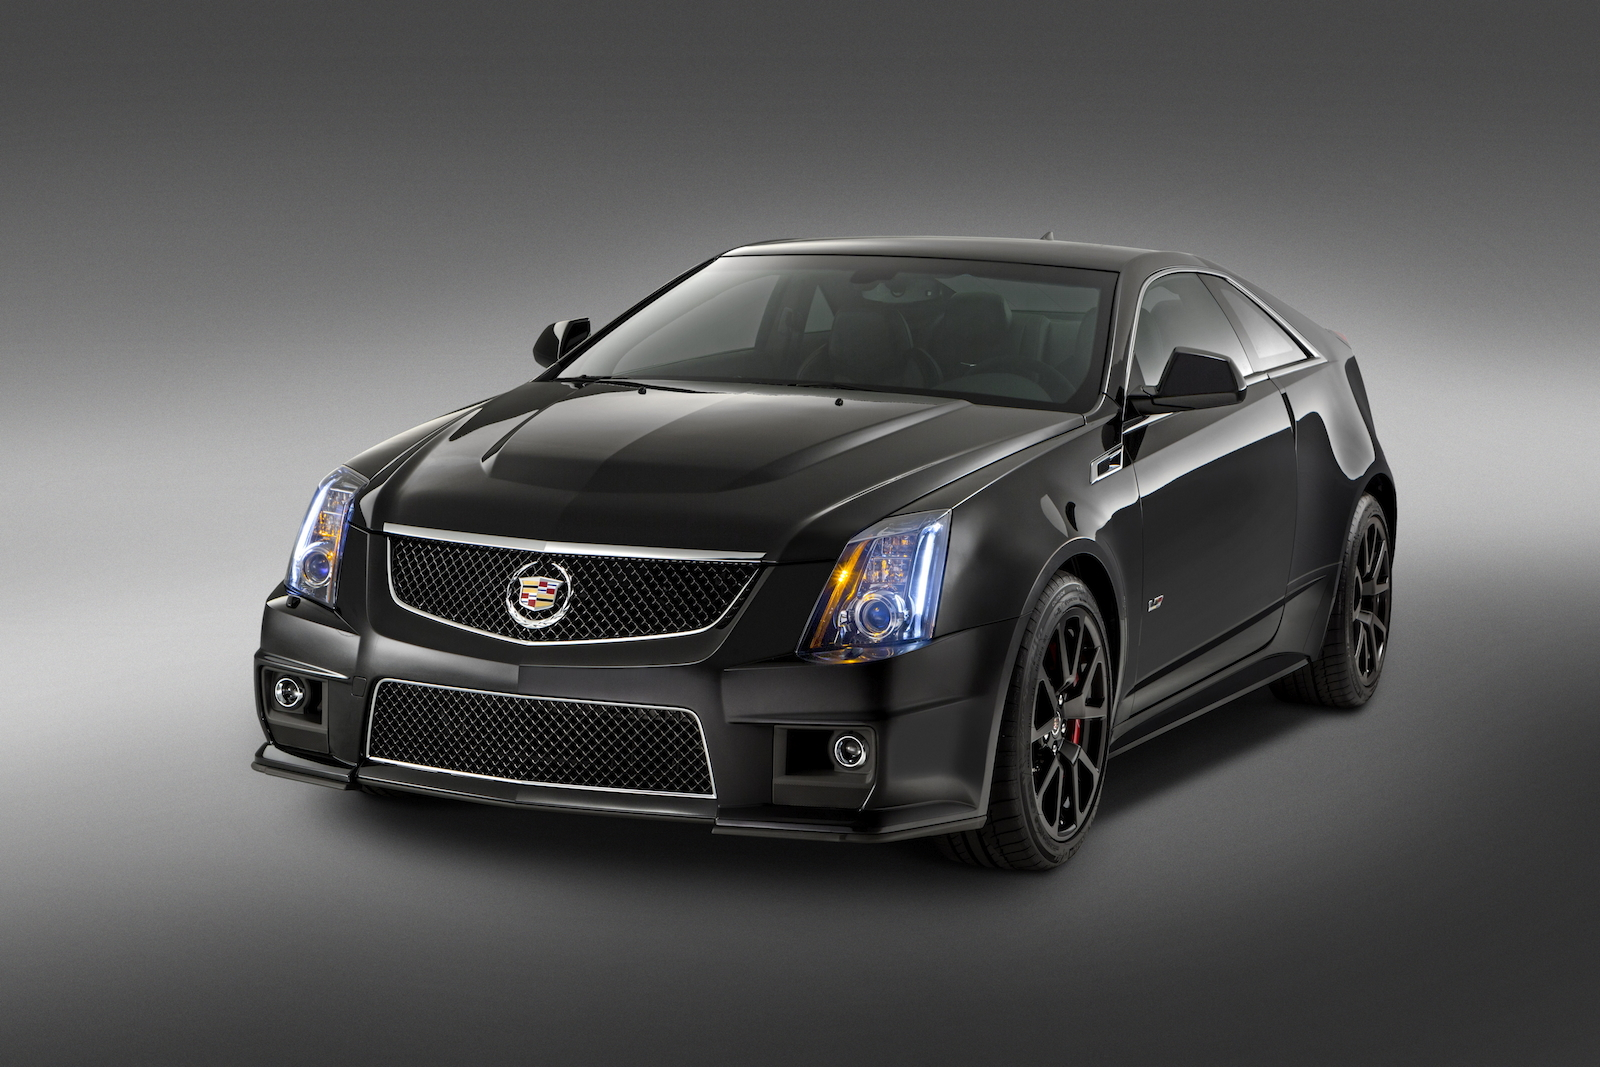 2017 Cadillac Cts V Coupe Special Edition Announced Ahead Of New 2016 Next Year